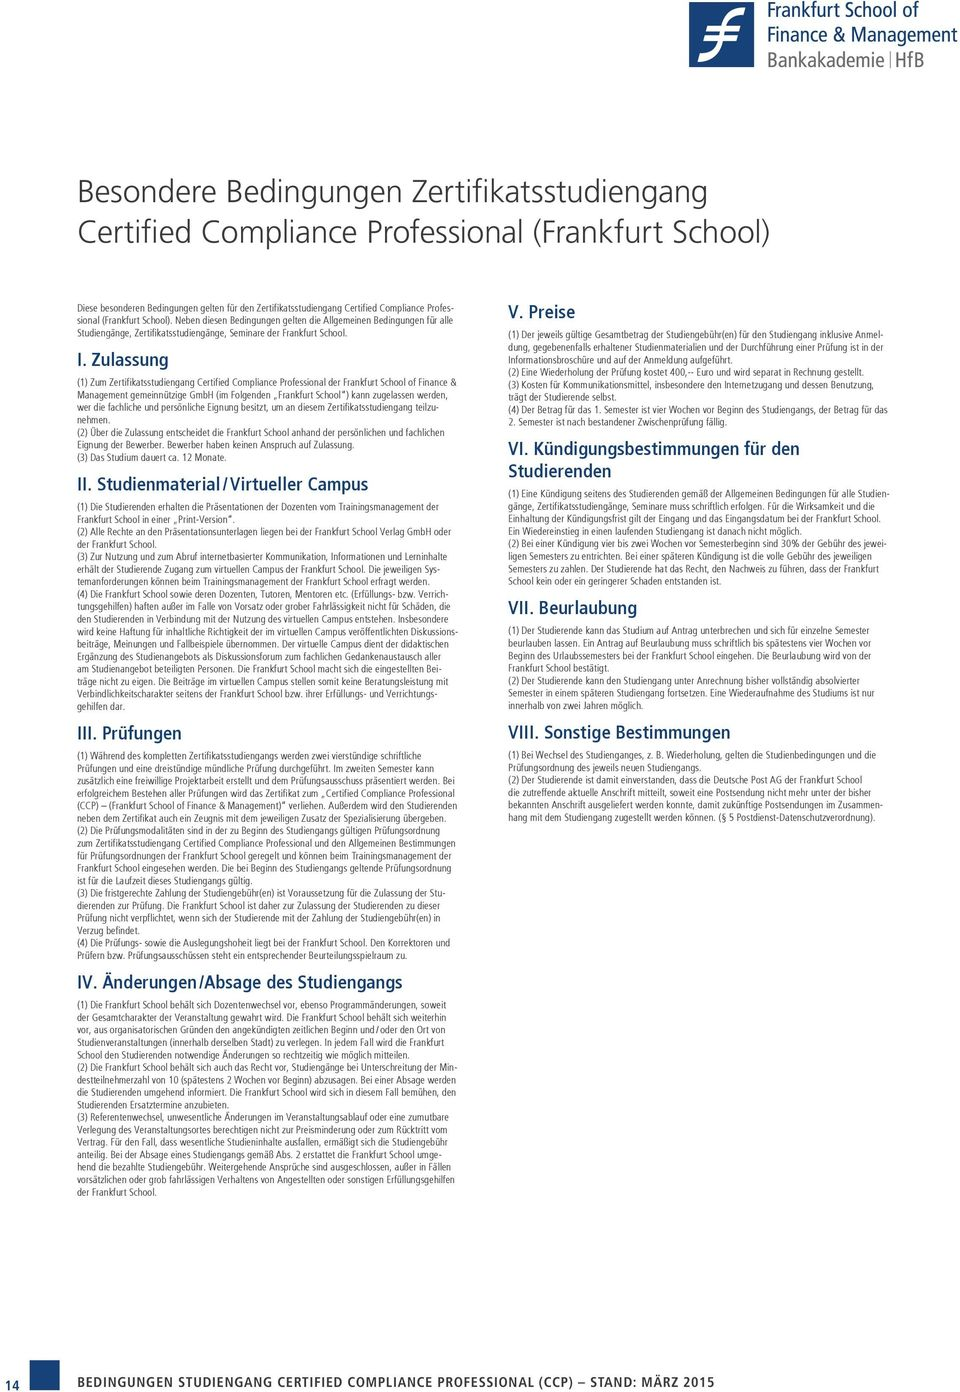 Zulassung (1) Zum Zertifikatsstudiengang Certified Compliance Professional der Frankfurt School of Finance & Management gemeinnützige GmbH (im Folgenden Frankfurt School ) kann zugelassen werden, wer